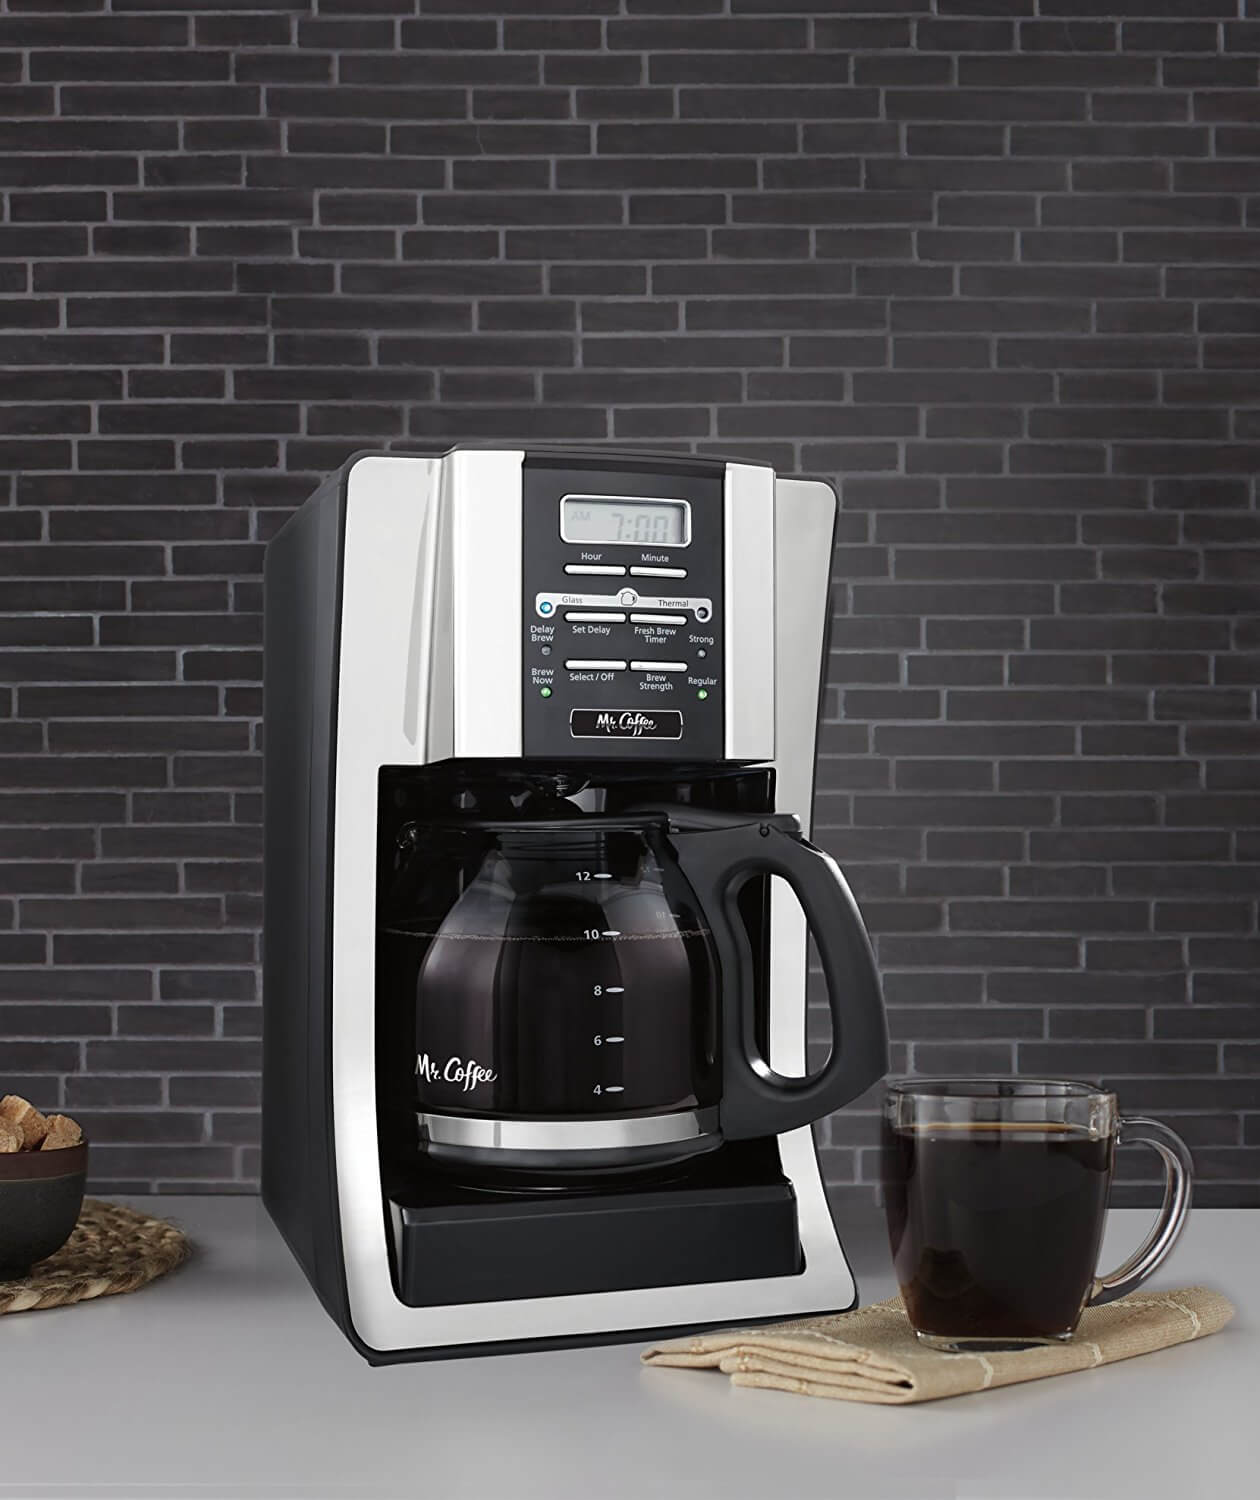 Mr Coffee 12 Cup Programmable Coffee Maker Review On The Review